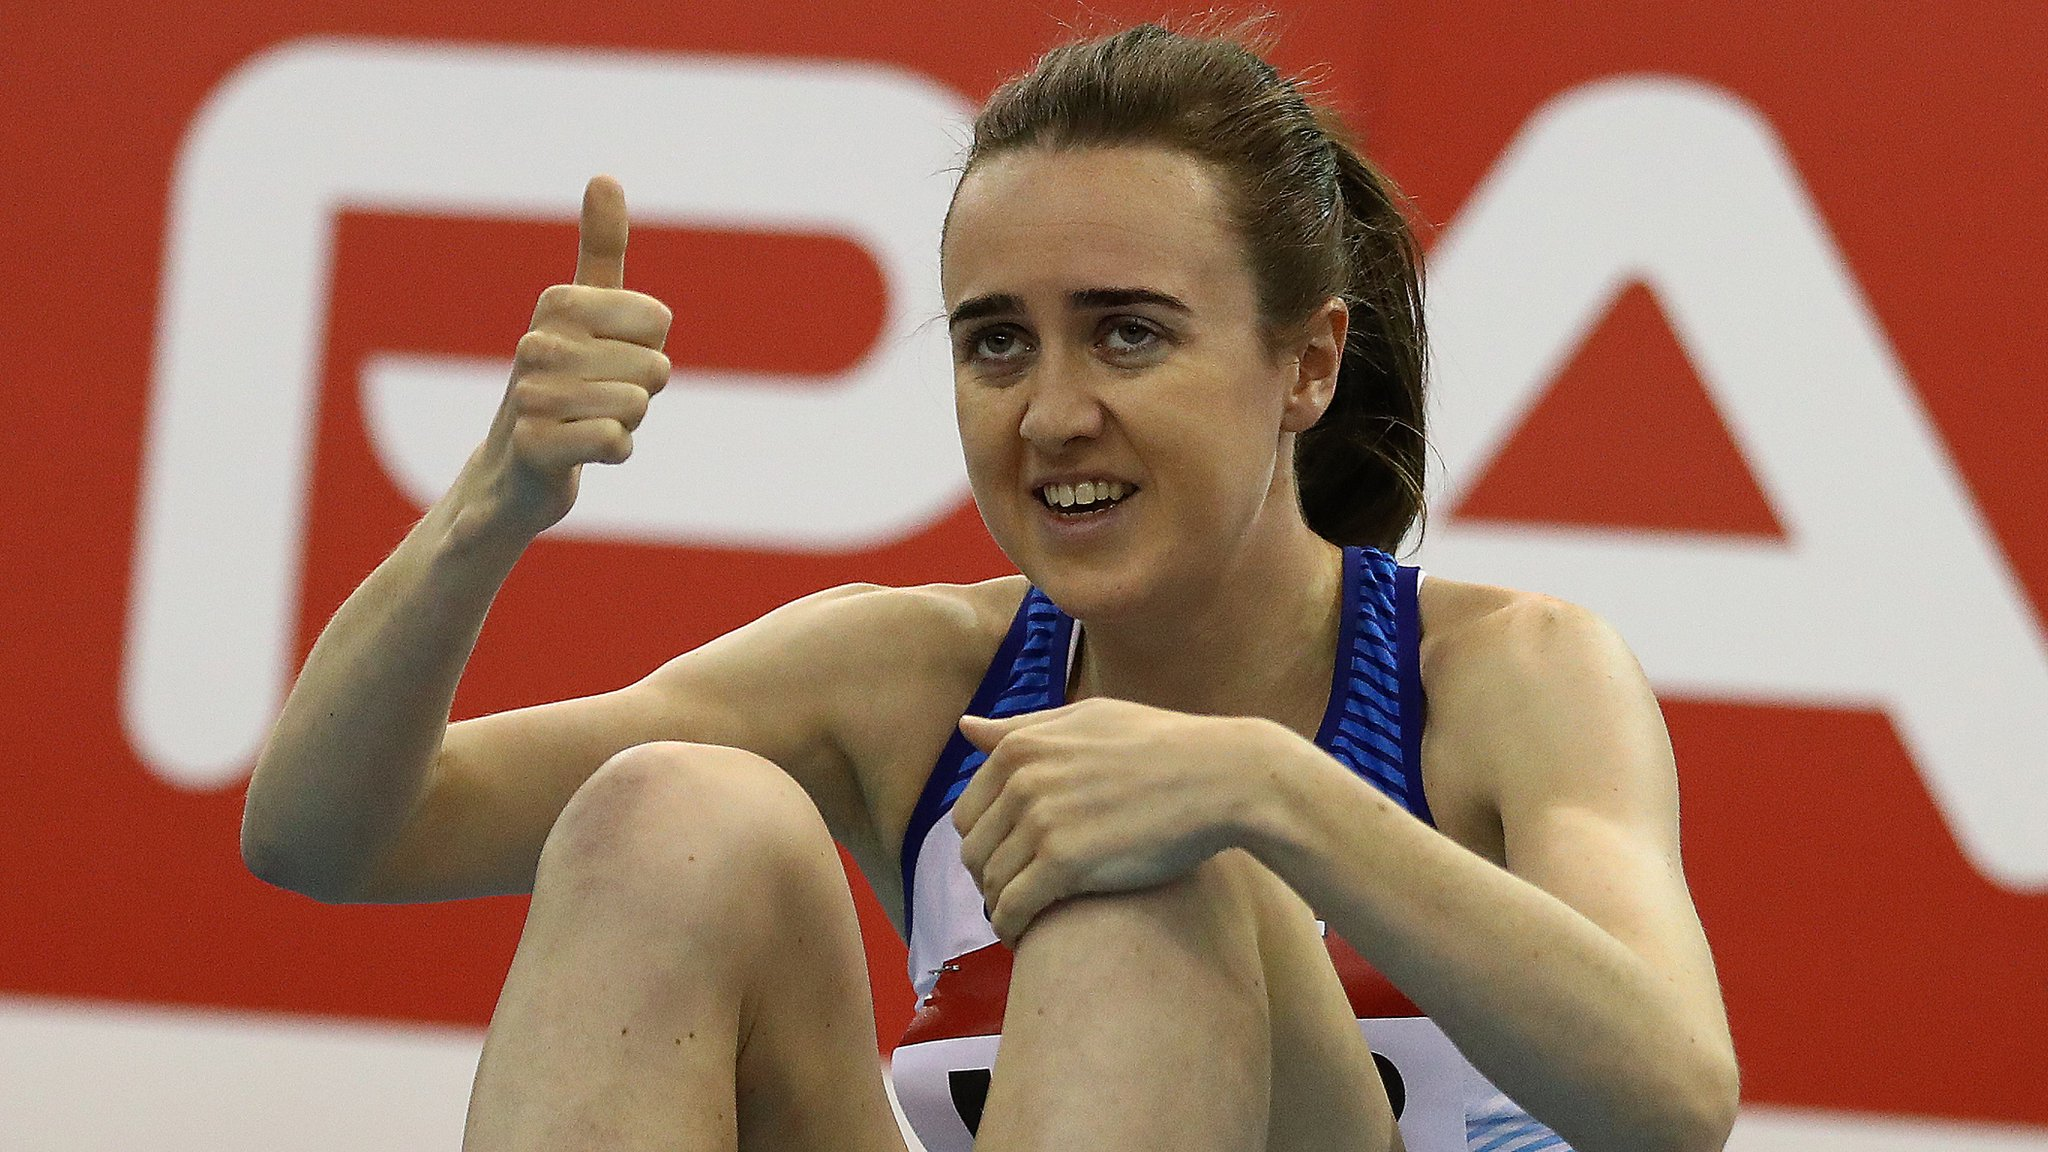 Laura Muir records third fastest indoor mile at Birmingham Indoor Grand Prix